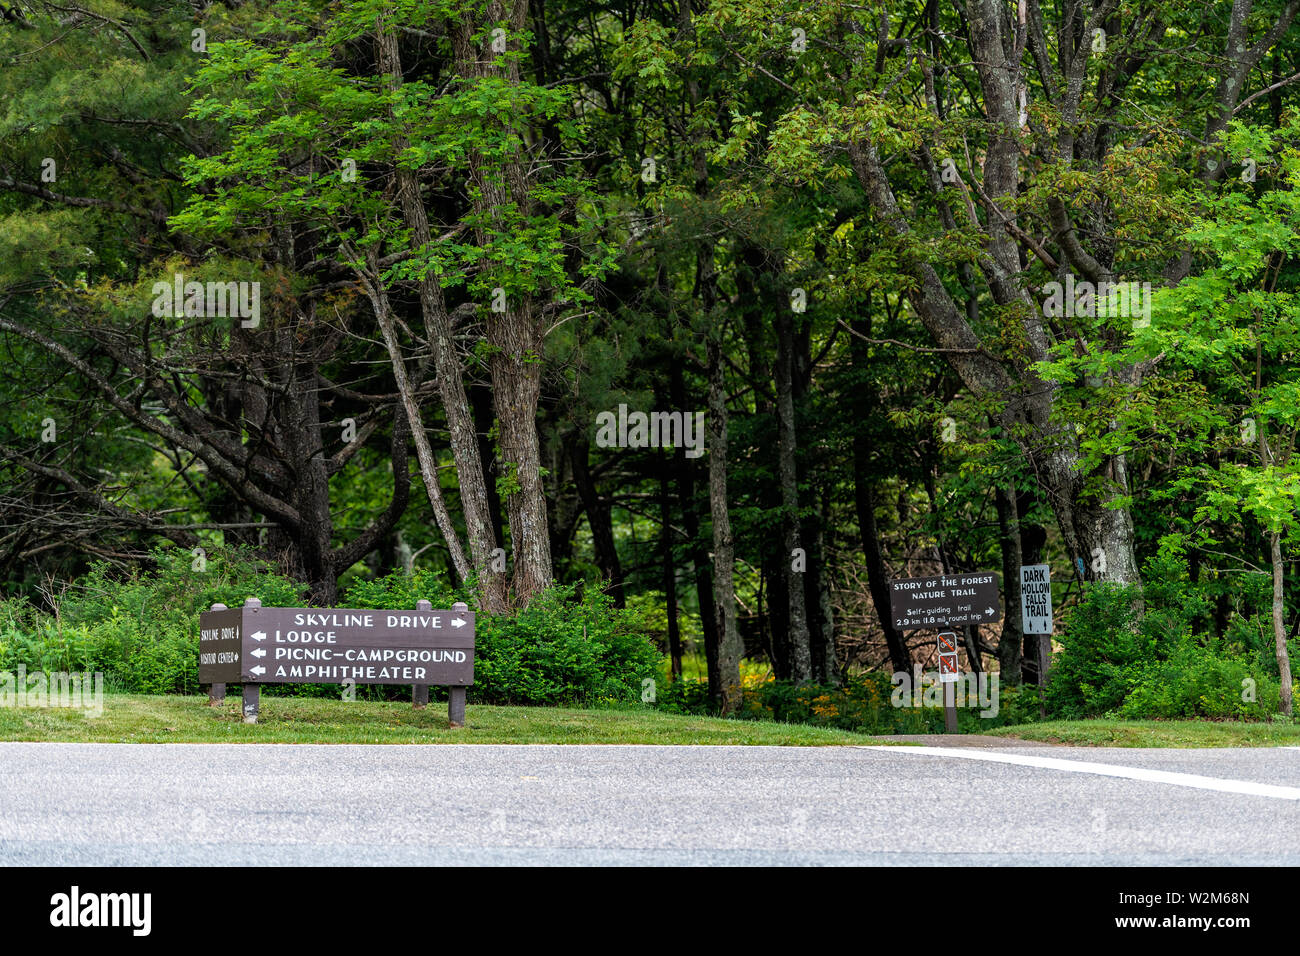 Road with signs in Shenandoah Blue Ridge appalachian mountains on skyline drive for lodge, picnic campground amphitheater visitor center and trails - Stock Image